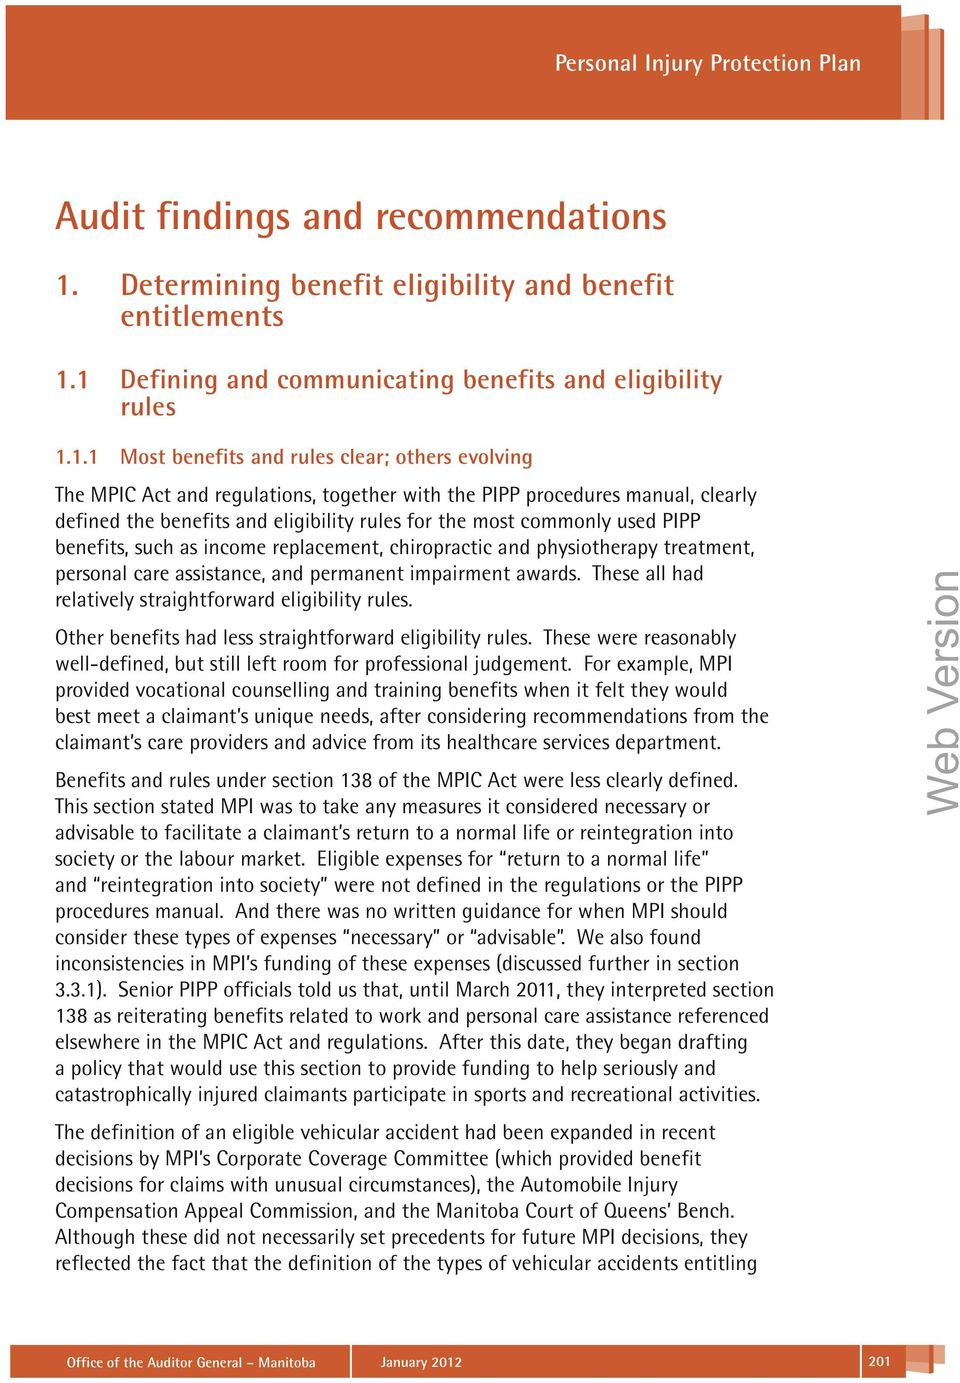 1 Defining and communicating benefits and eligibility rules 1.1.1 Most benefits and rules clear; others evolving The MPIC Act and regulations, together with the PIPP procedures manual, clearly